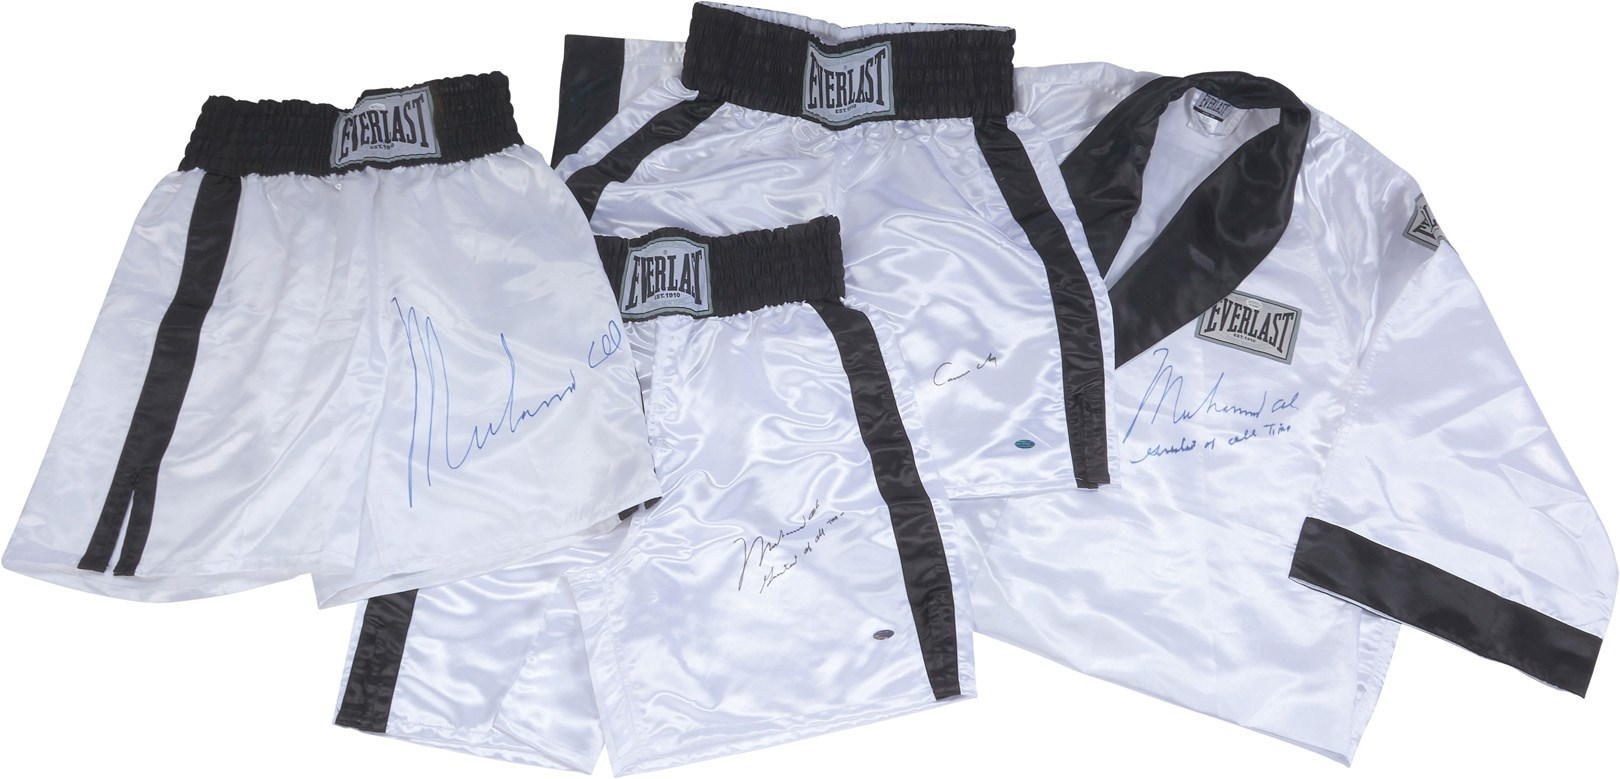 Quality Muhammad Ali & Cassius Clay Signed Trunks and Robe (4)